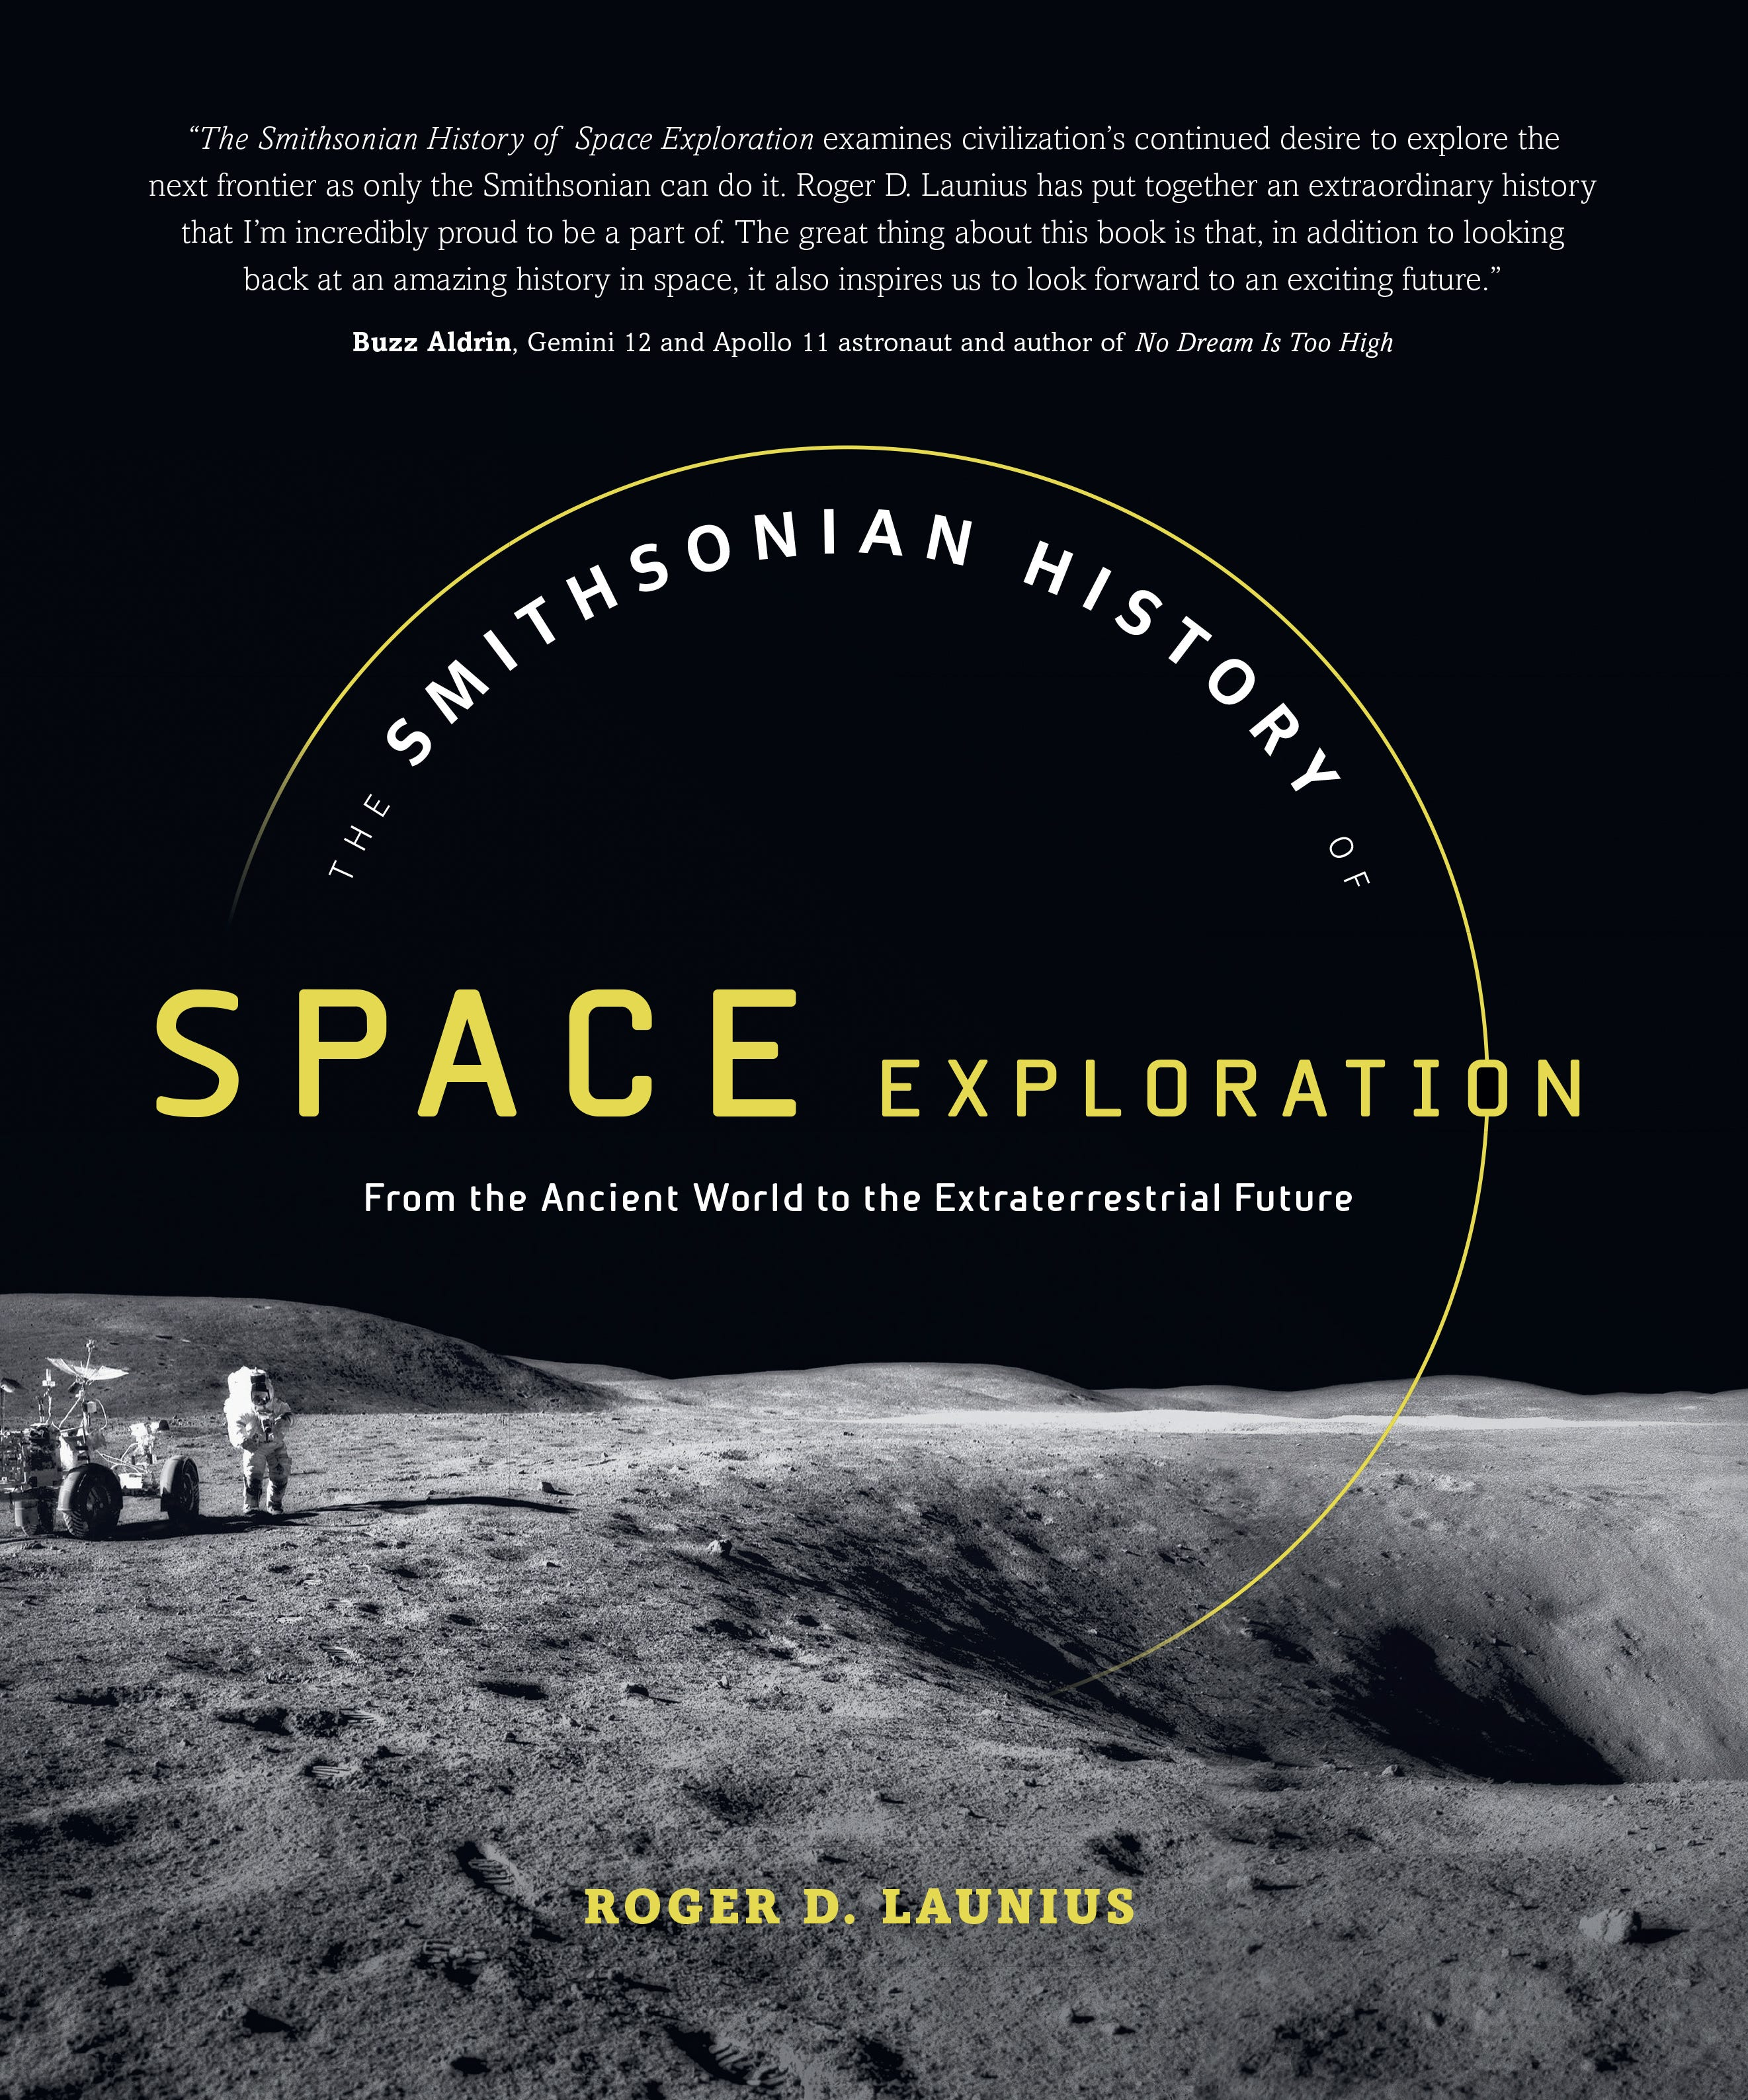 """The Smithsonian History of Space Exploration: From the Ancient World to the Extraterrestrial Future"" was released Oct. 23."